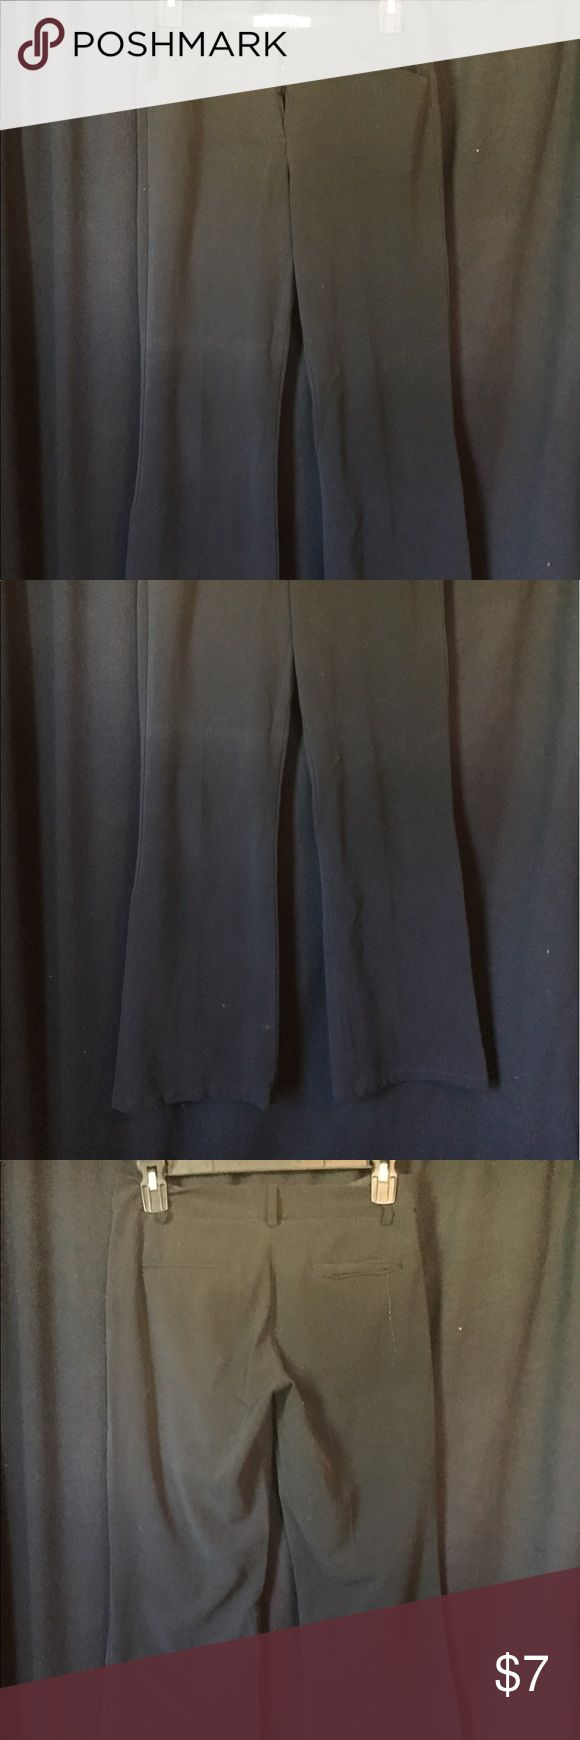 Black slacks These need the zipper part sewn back together. Other than that these are in good condition Star City Pants Trousers